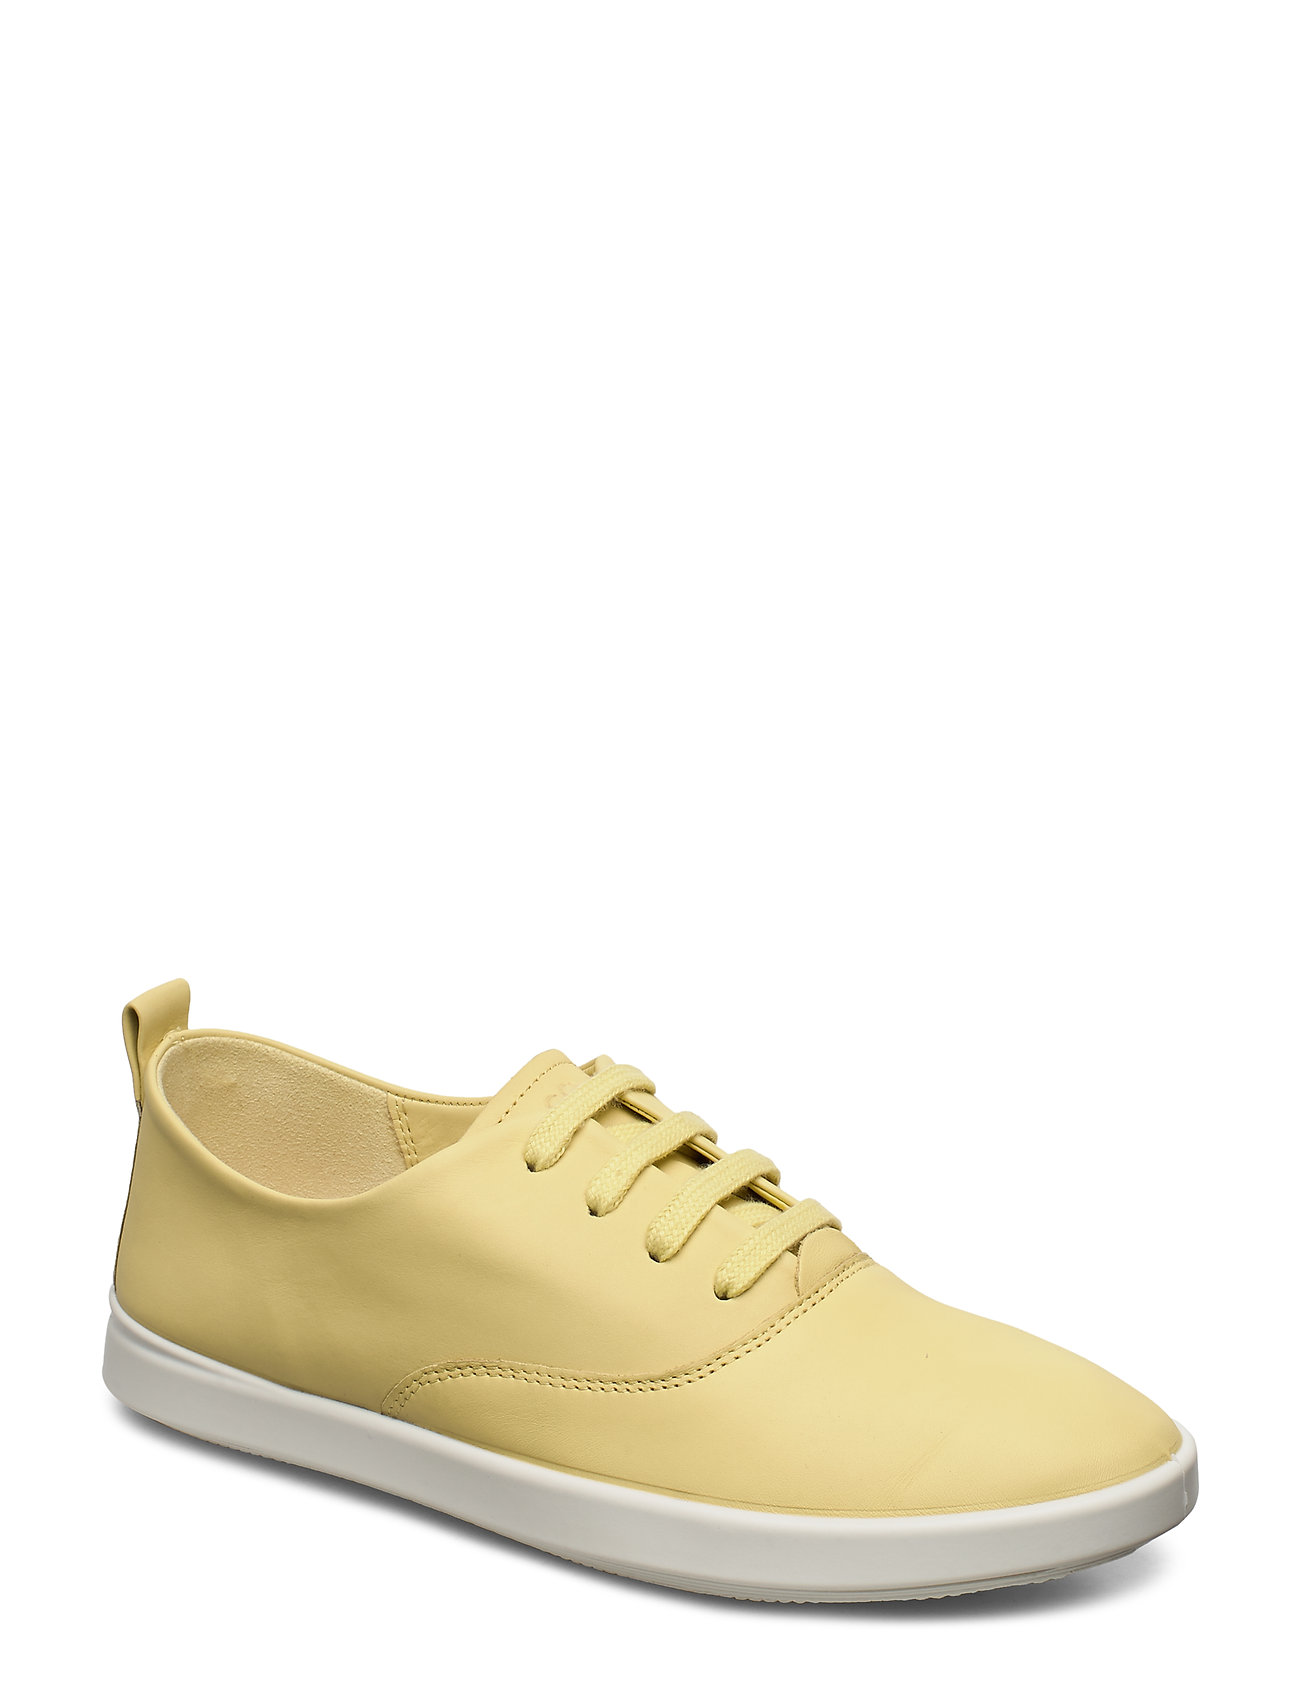 Image of Leisure Low-top Sneakers Gul ECCO (3345962693)